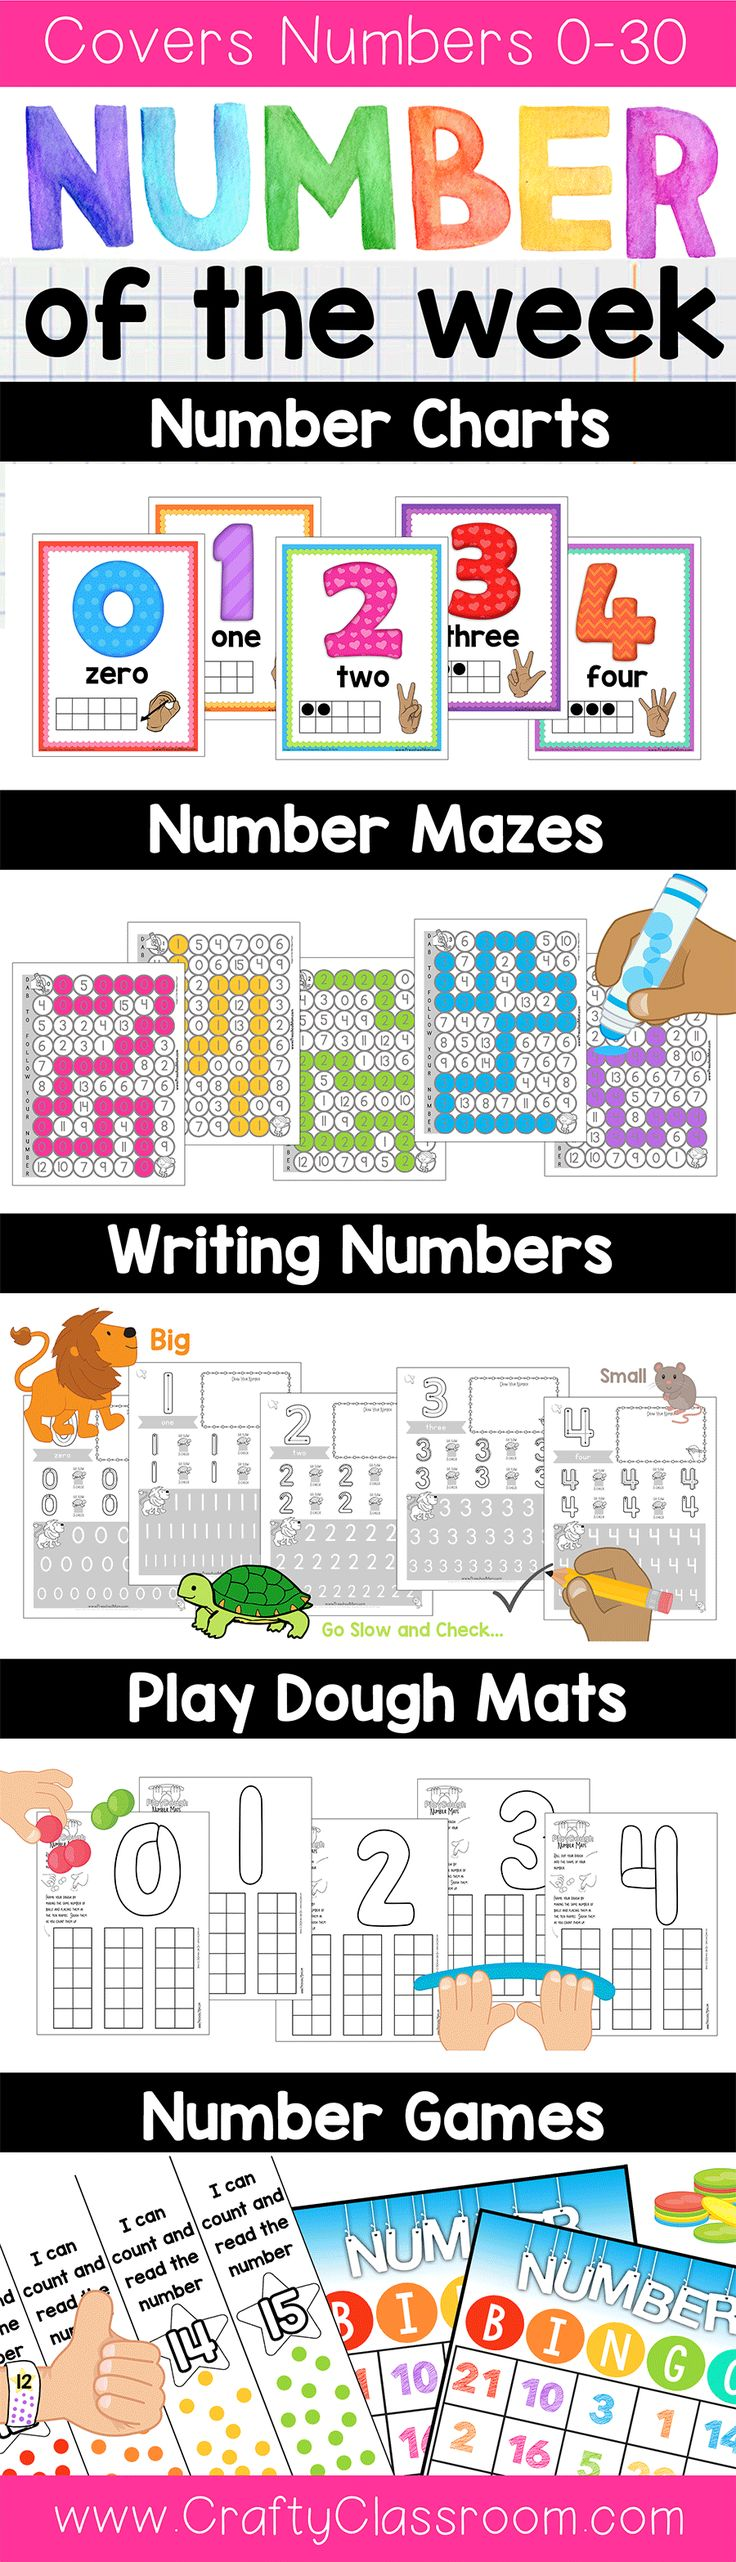 Number of the Week Preschool Curriculum.  Covers numbers 0-30 and coordinates perfectly with our Letter of the Week and Shape of the Week Program